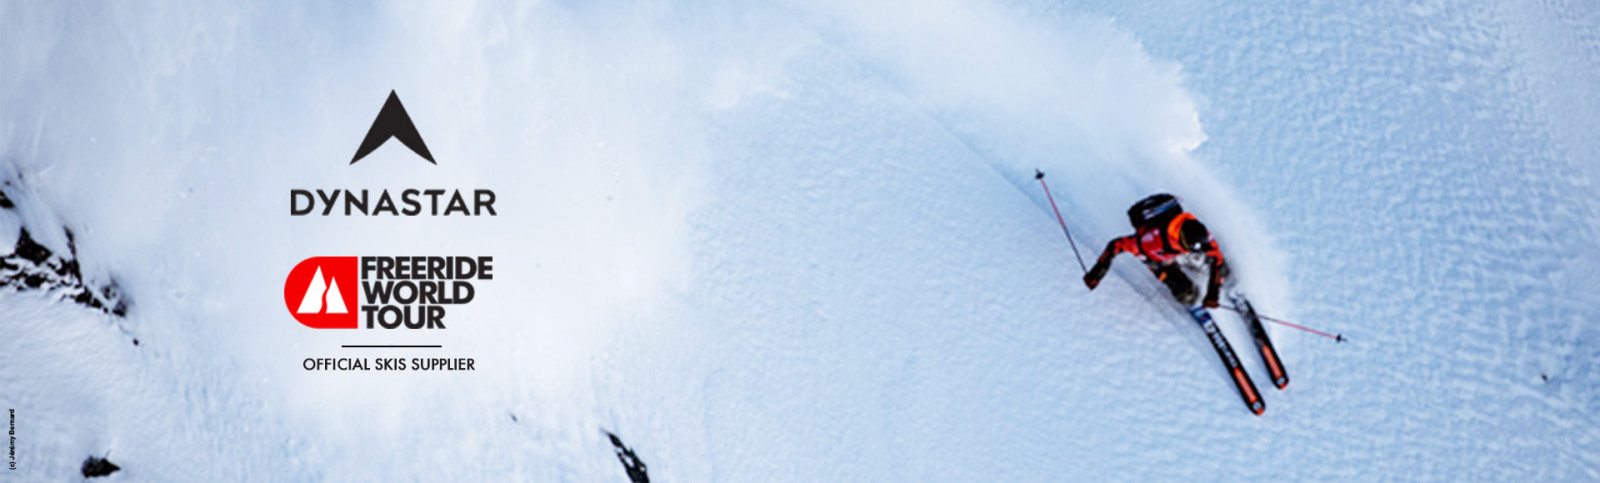 DYNASTAR OFFICIAL SKIS SUPPLIER OF THE FREERIDE WORLD TOUR